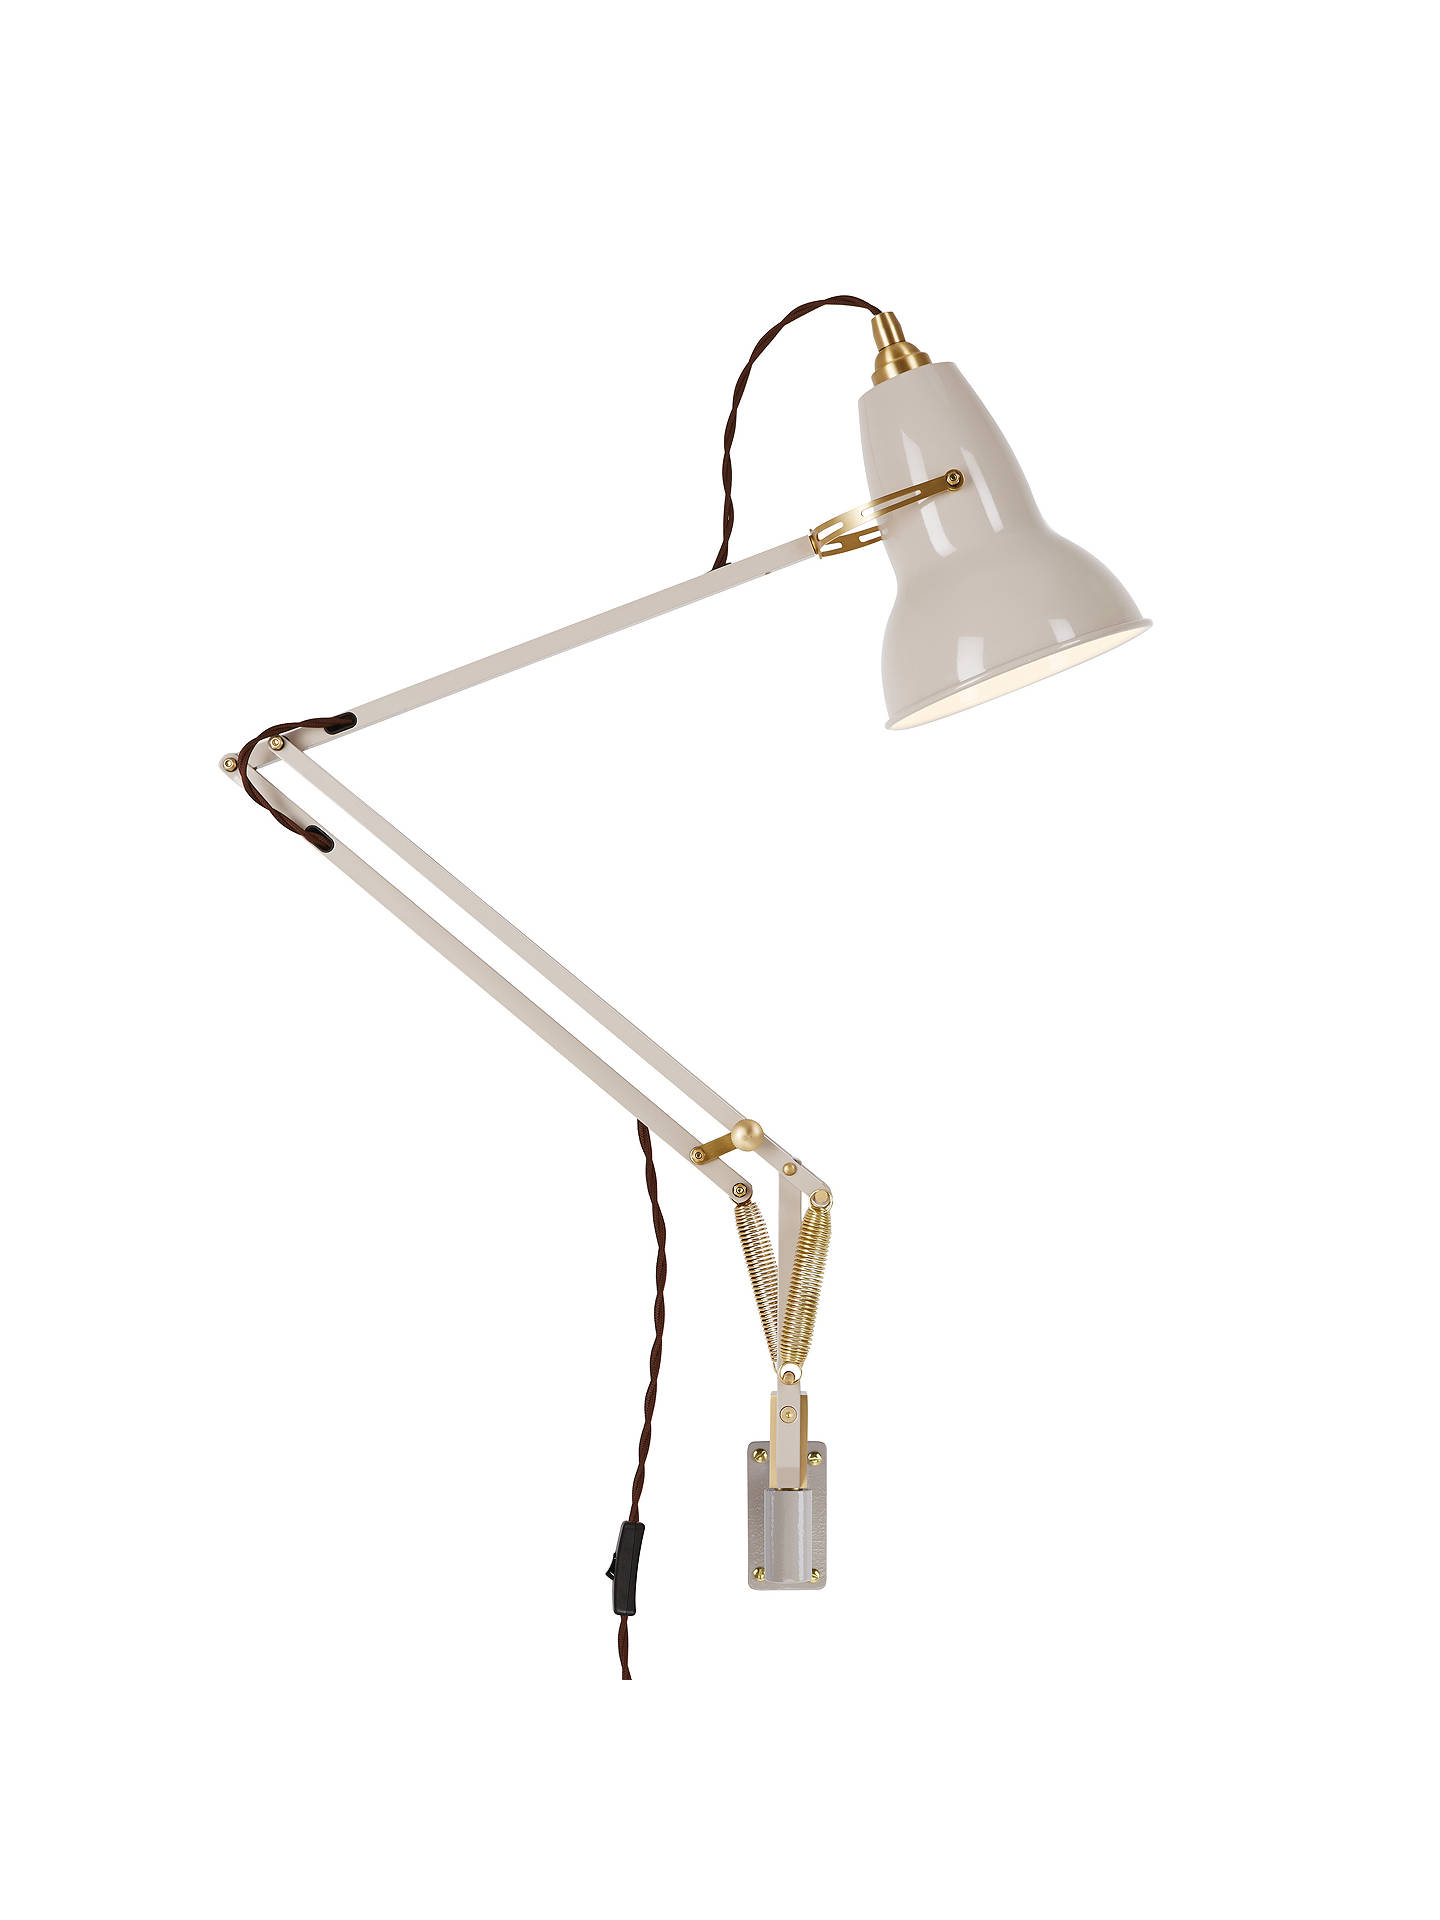 BuyAnglepoise Original 1227 Brass Wall Mounted Light, Light Taupe Online at johnlewis.com